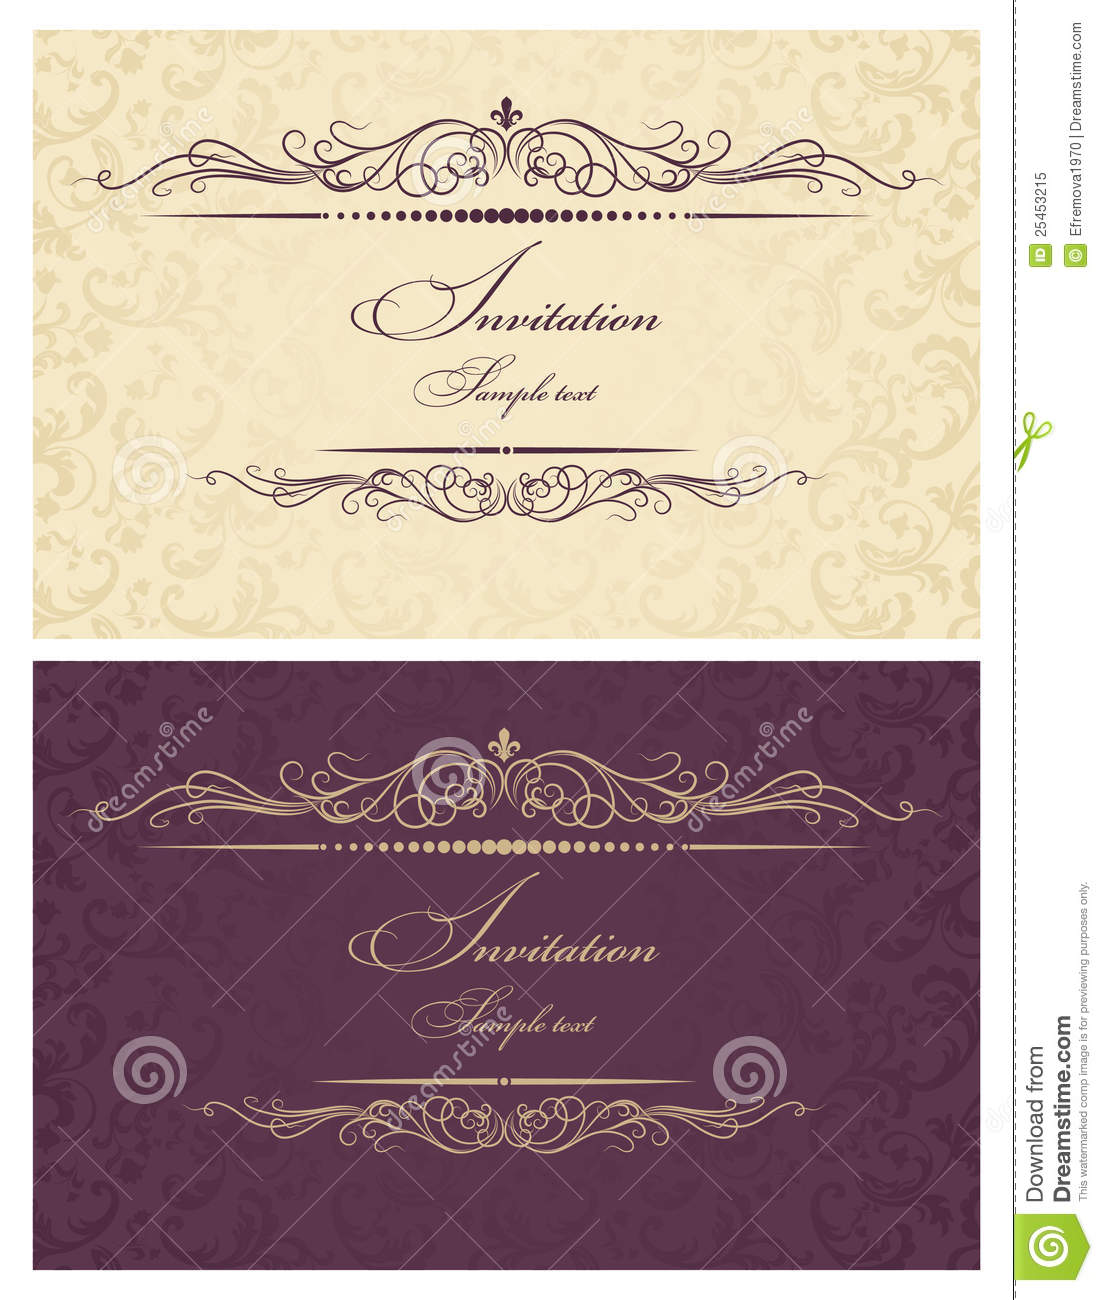 Invitation Cards Gold And Burgundy Royalty Free Stock Photo - Image ...